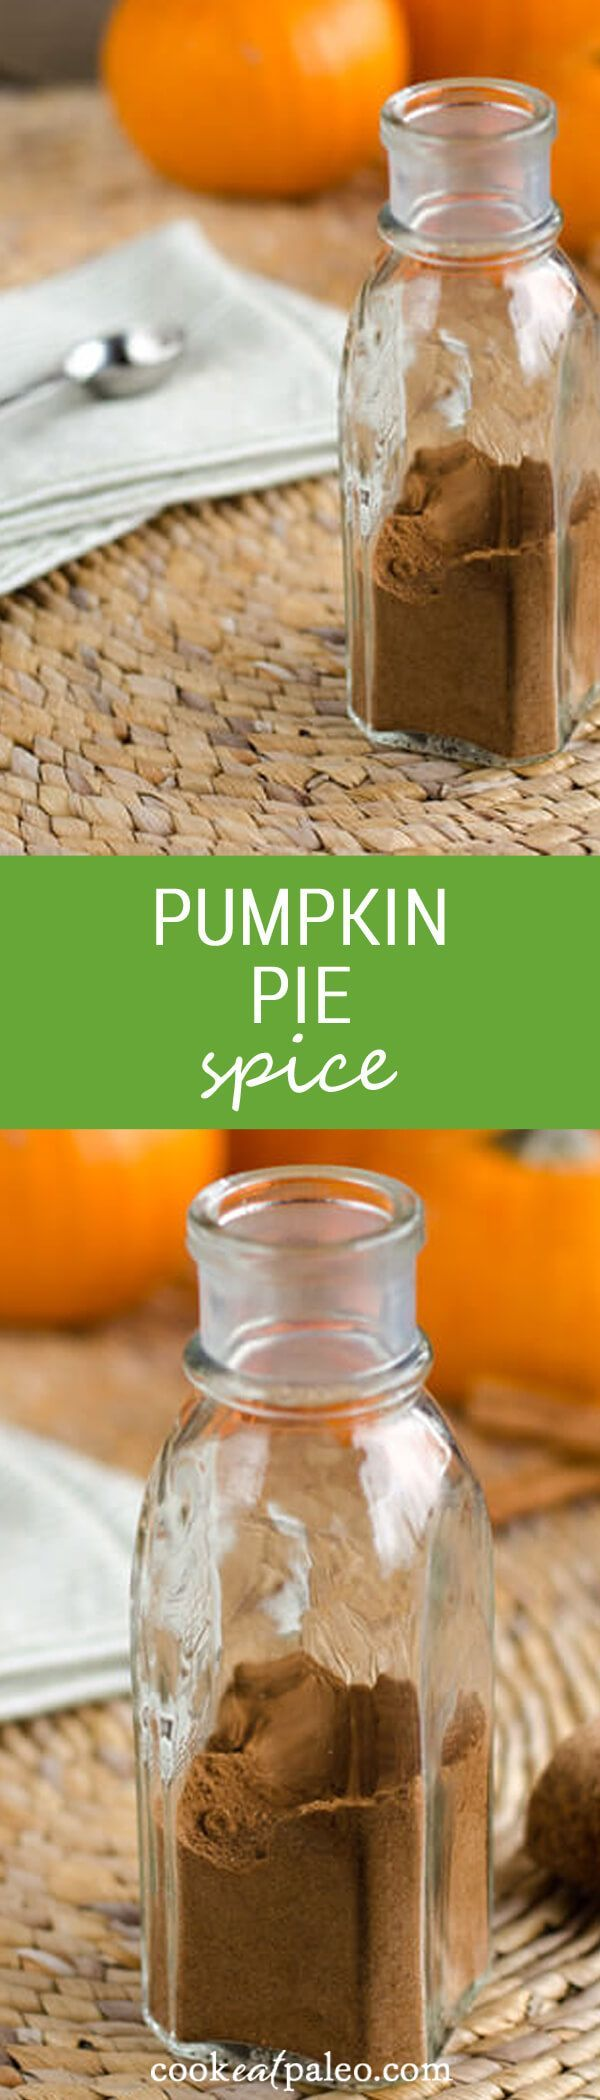 This pumpkin pie spice recipe is so quick and easy. You probably have all of the ingredients for this homemade pumpkin pie spice in your cupboard. ~ http://cookeatpaleo.com